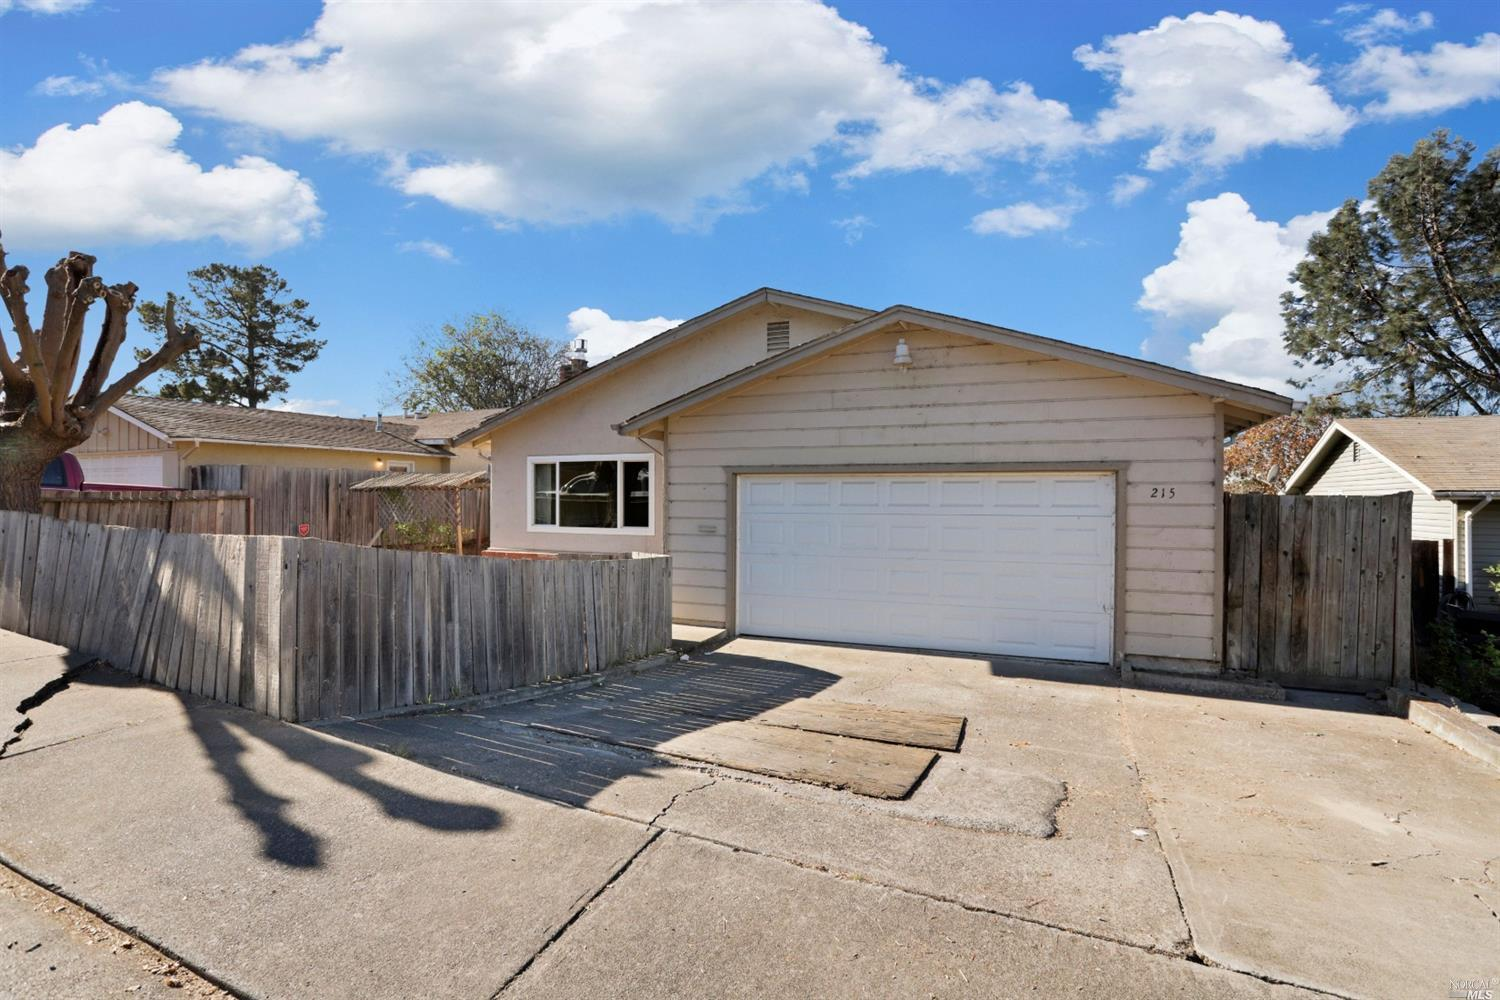 Mini Drive Area 3 Bedroom 2 Bathroom home, 2 Car Garage Attached! Level Backyard Lot with Covered Pa